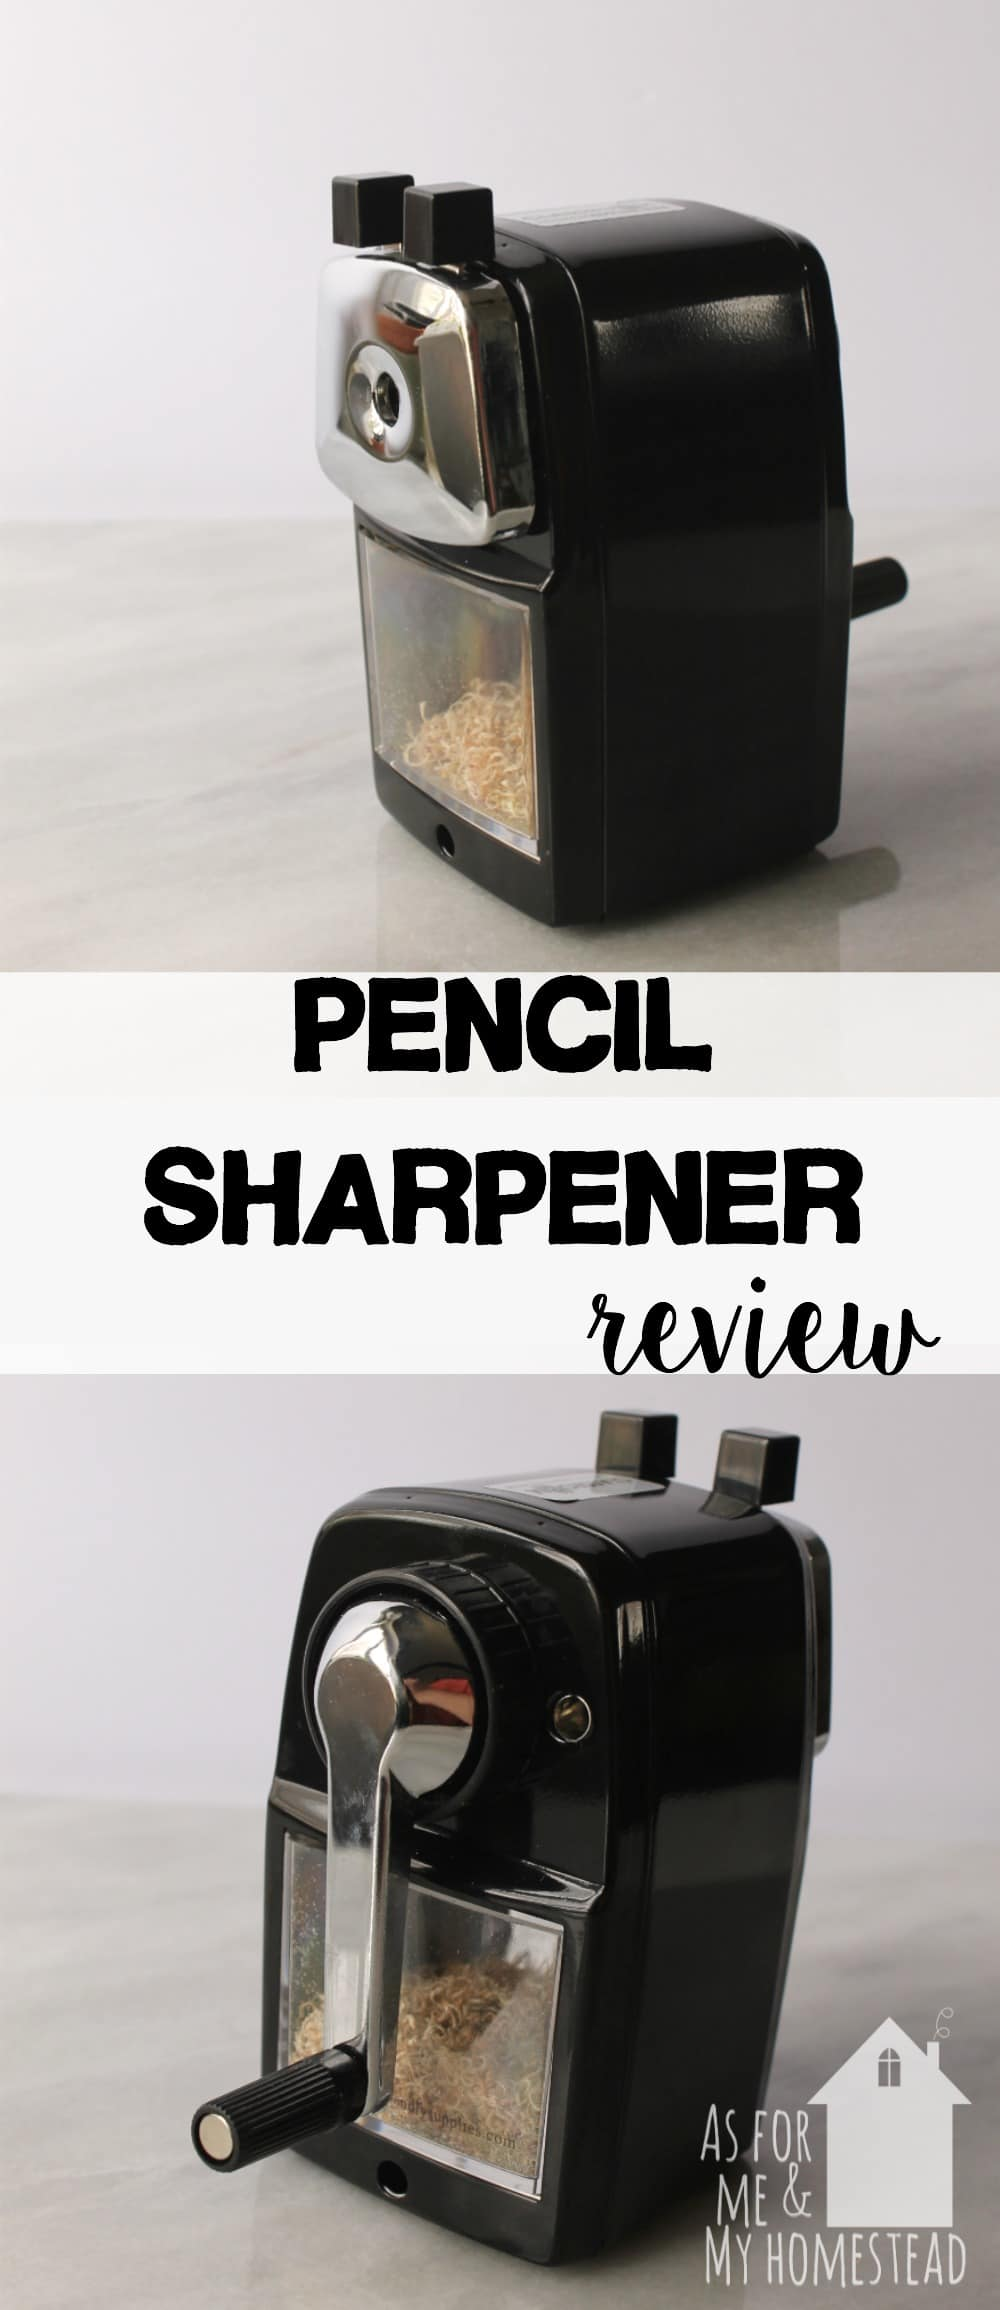 Looking for a well-built pencil sharpener for your homeschool? We put this pencil sharpener to the test -->> read my review!